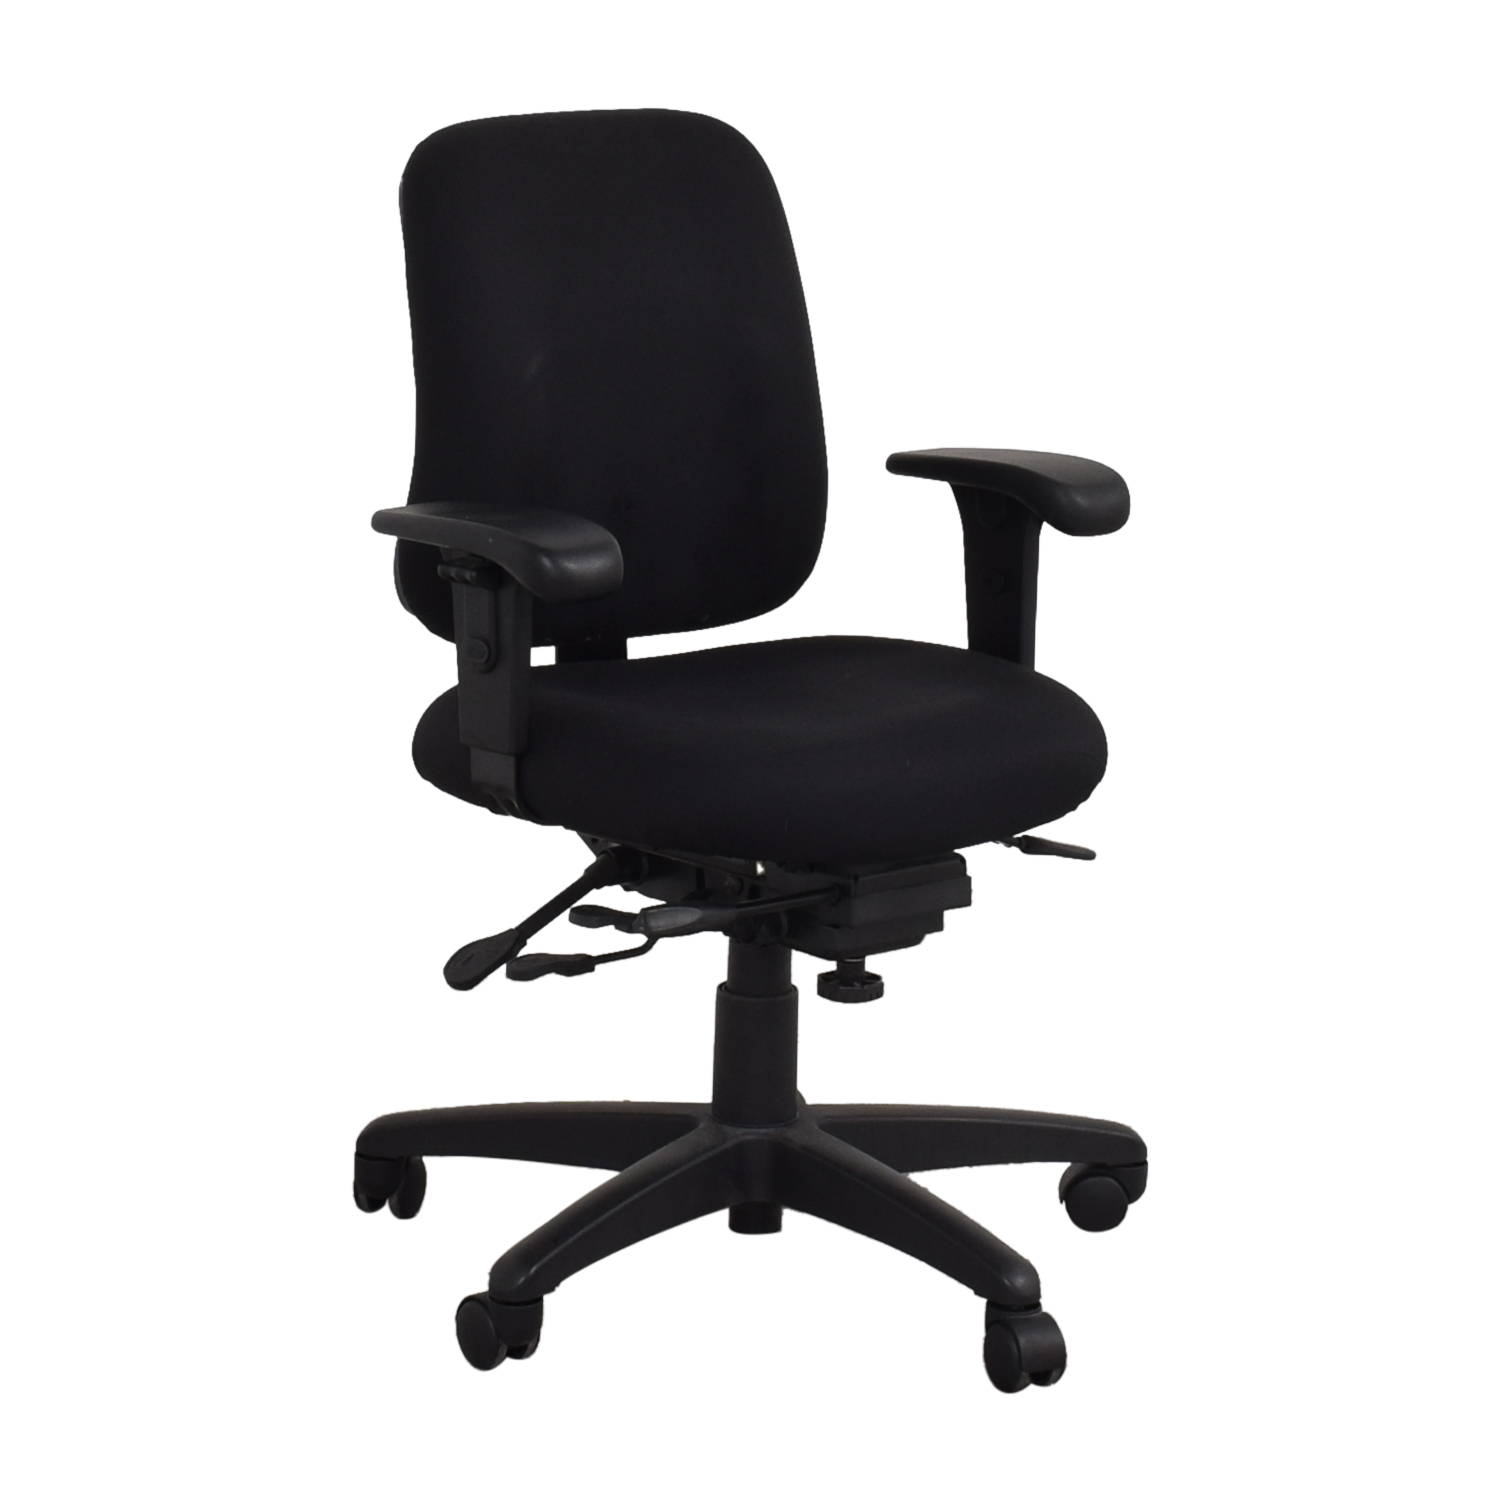 buy Office Master Office Master PT Value Economy Task Chair with Arms online